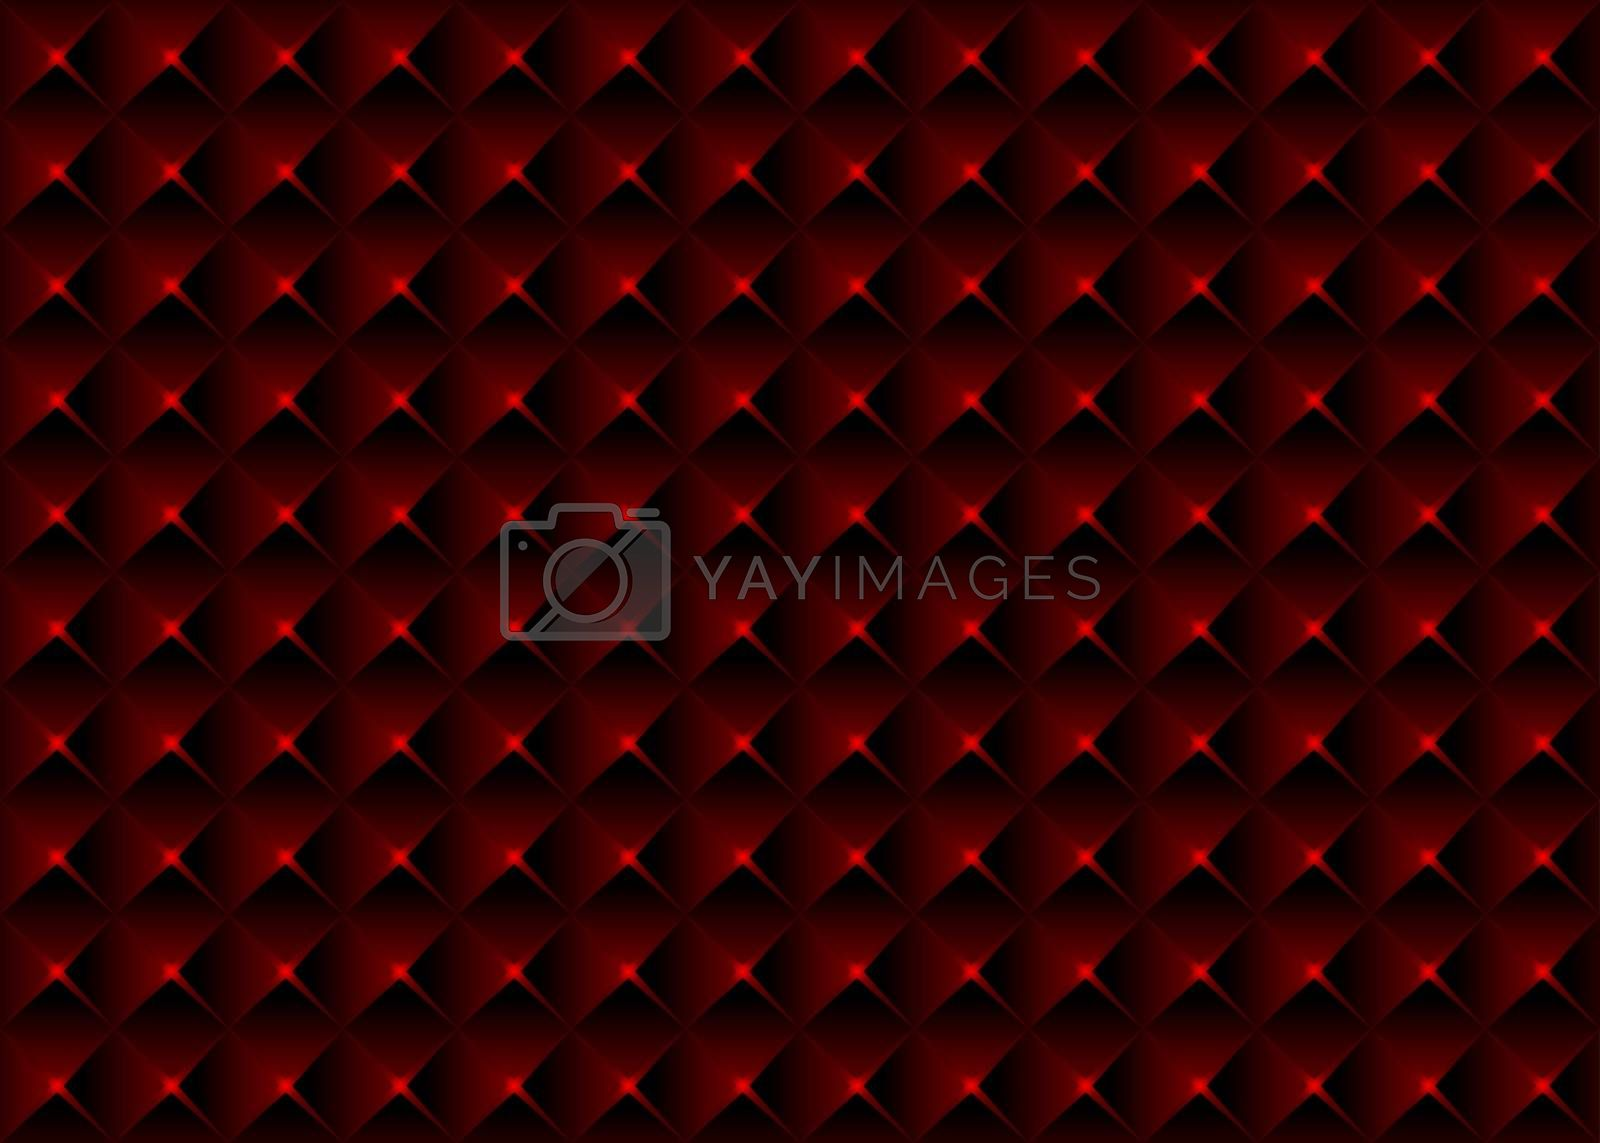 Red Pyramidal Seamless Texture - Geometrical Background Illustration, Vector